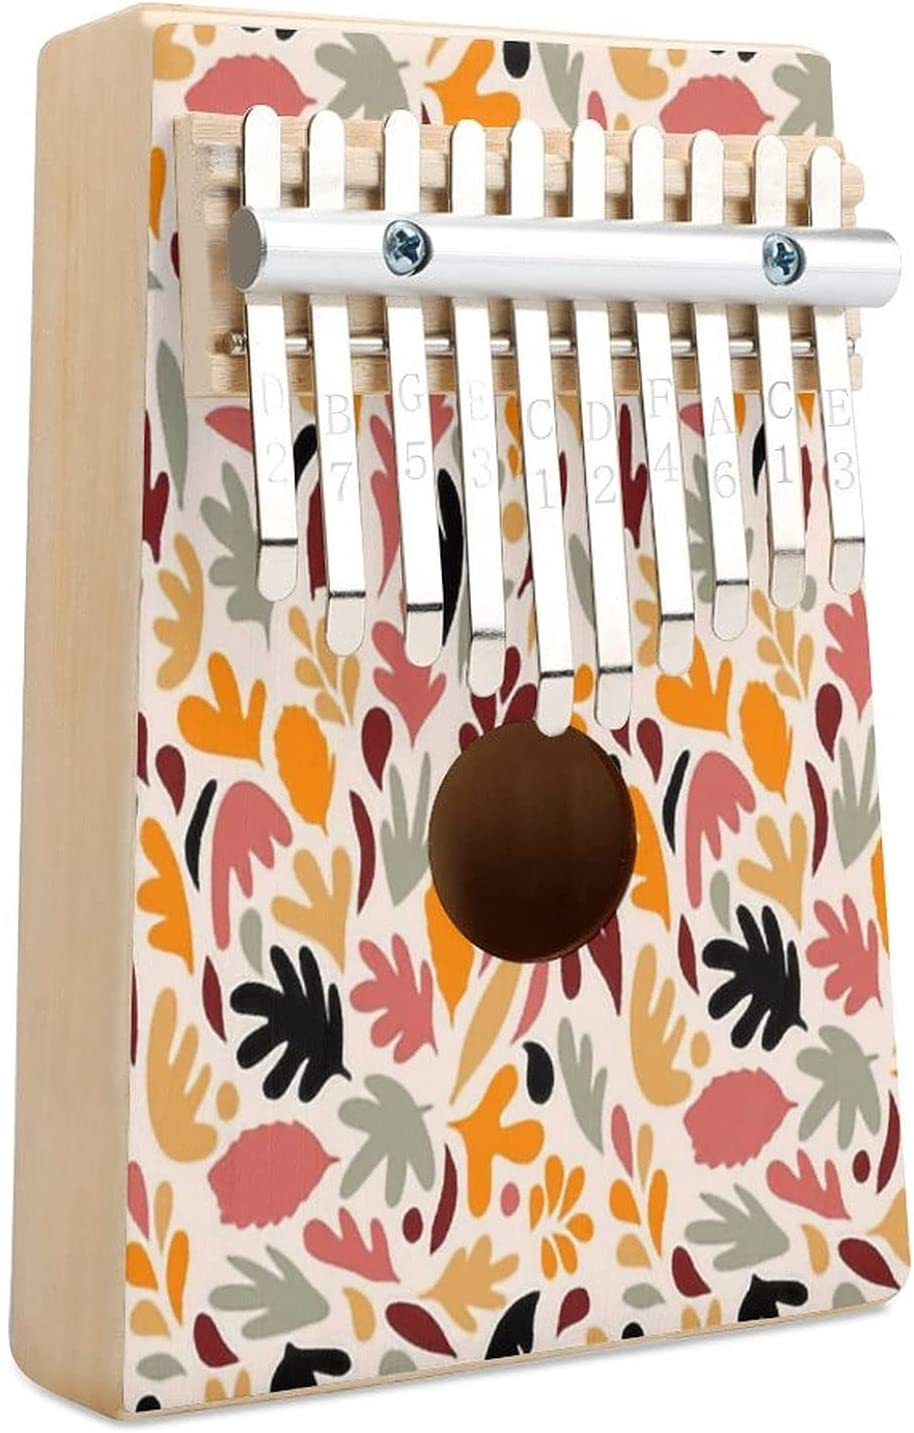 Retro Fall In Love Matisse Foliage Key 10 Piano Thumb Kalimba Opening large release sale 25% OFF S